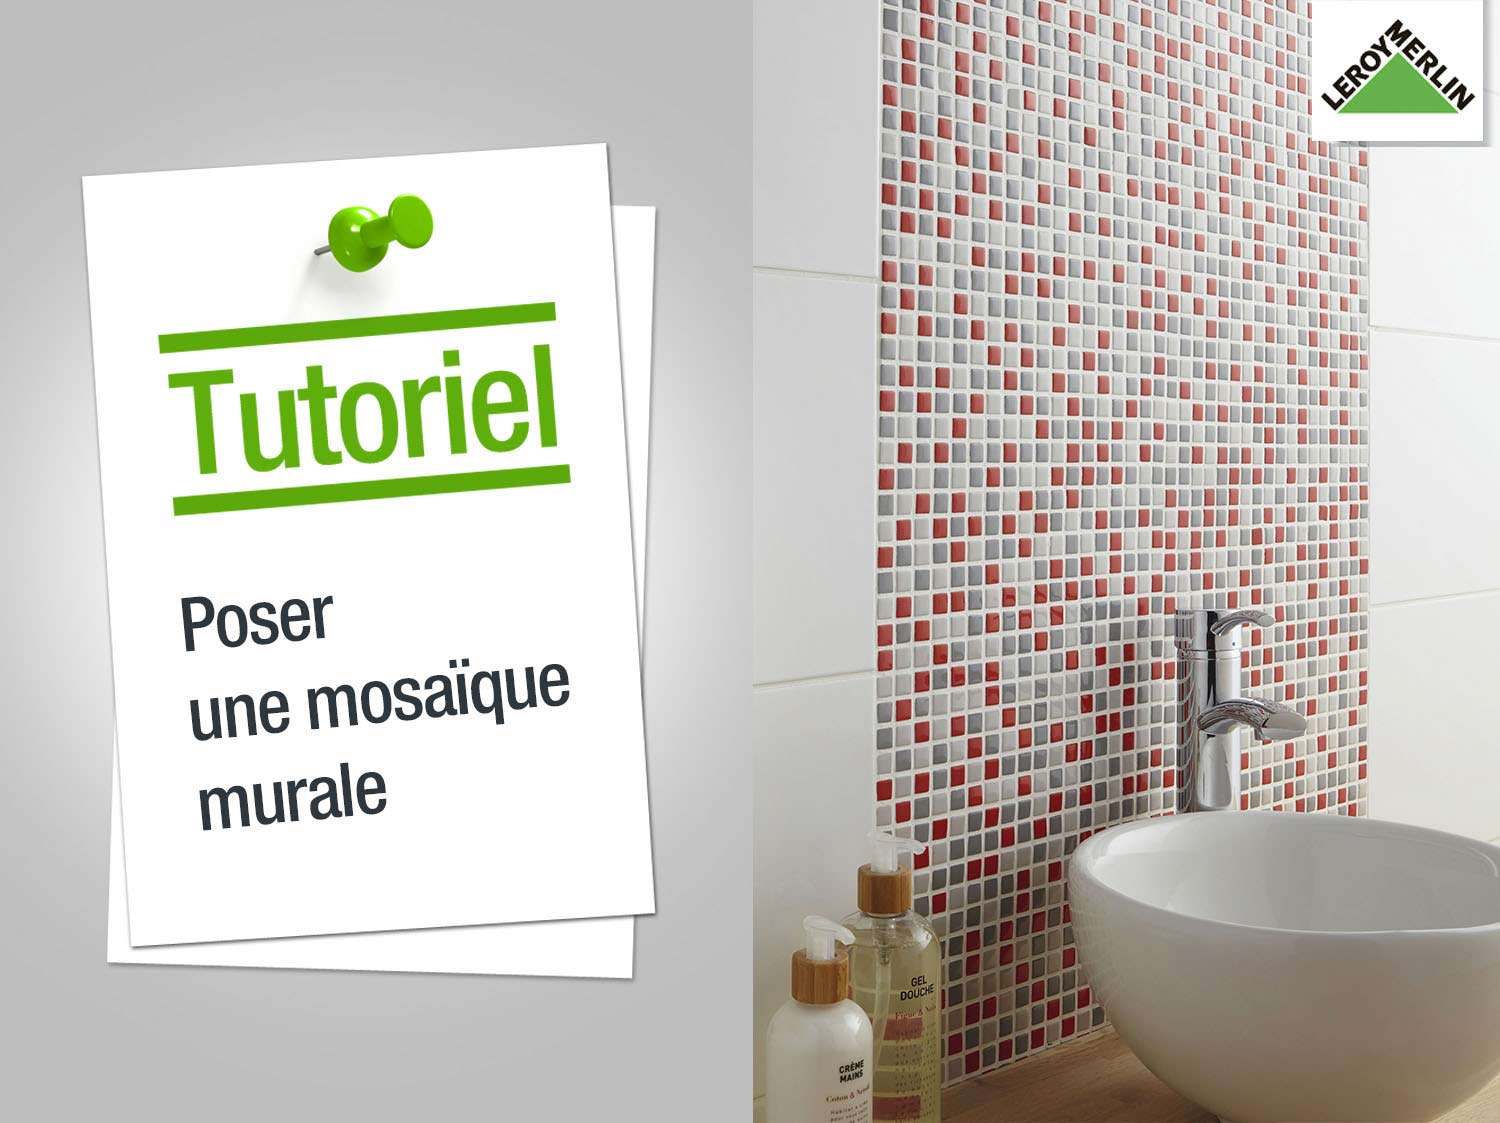 Comment poser une crdence en inox excellent attrayant for Mosaique murale cuisine